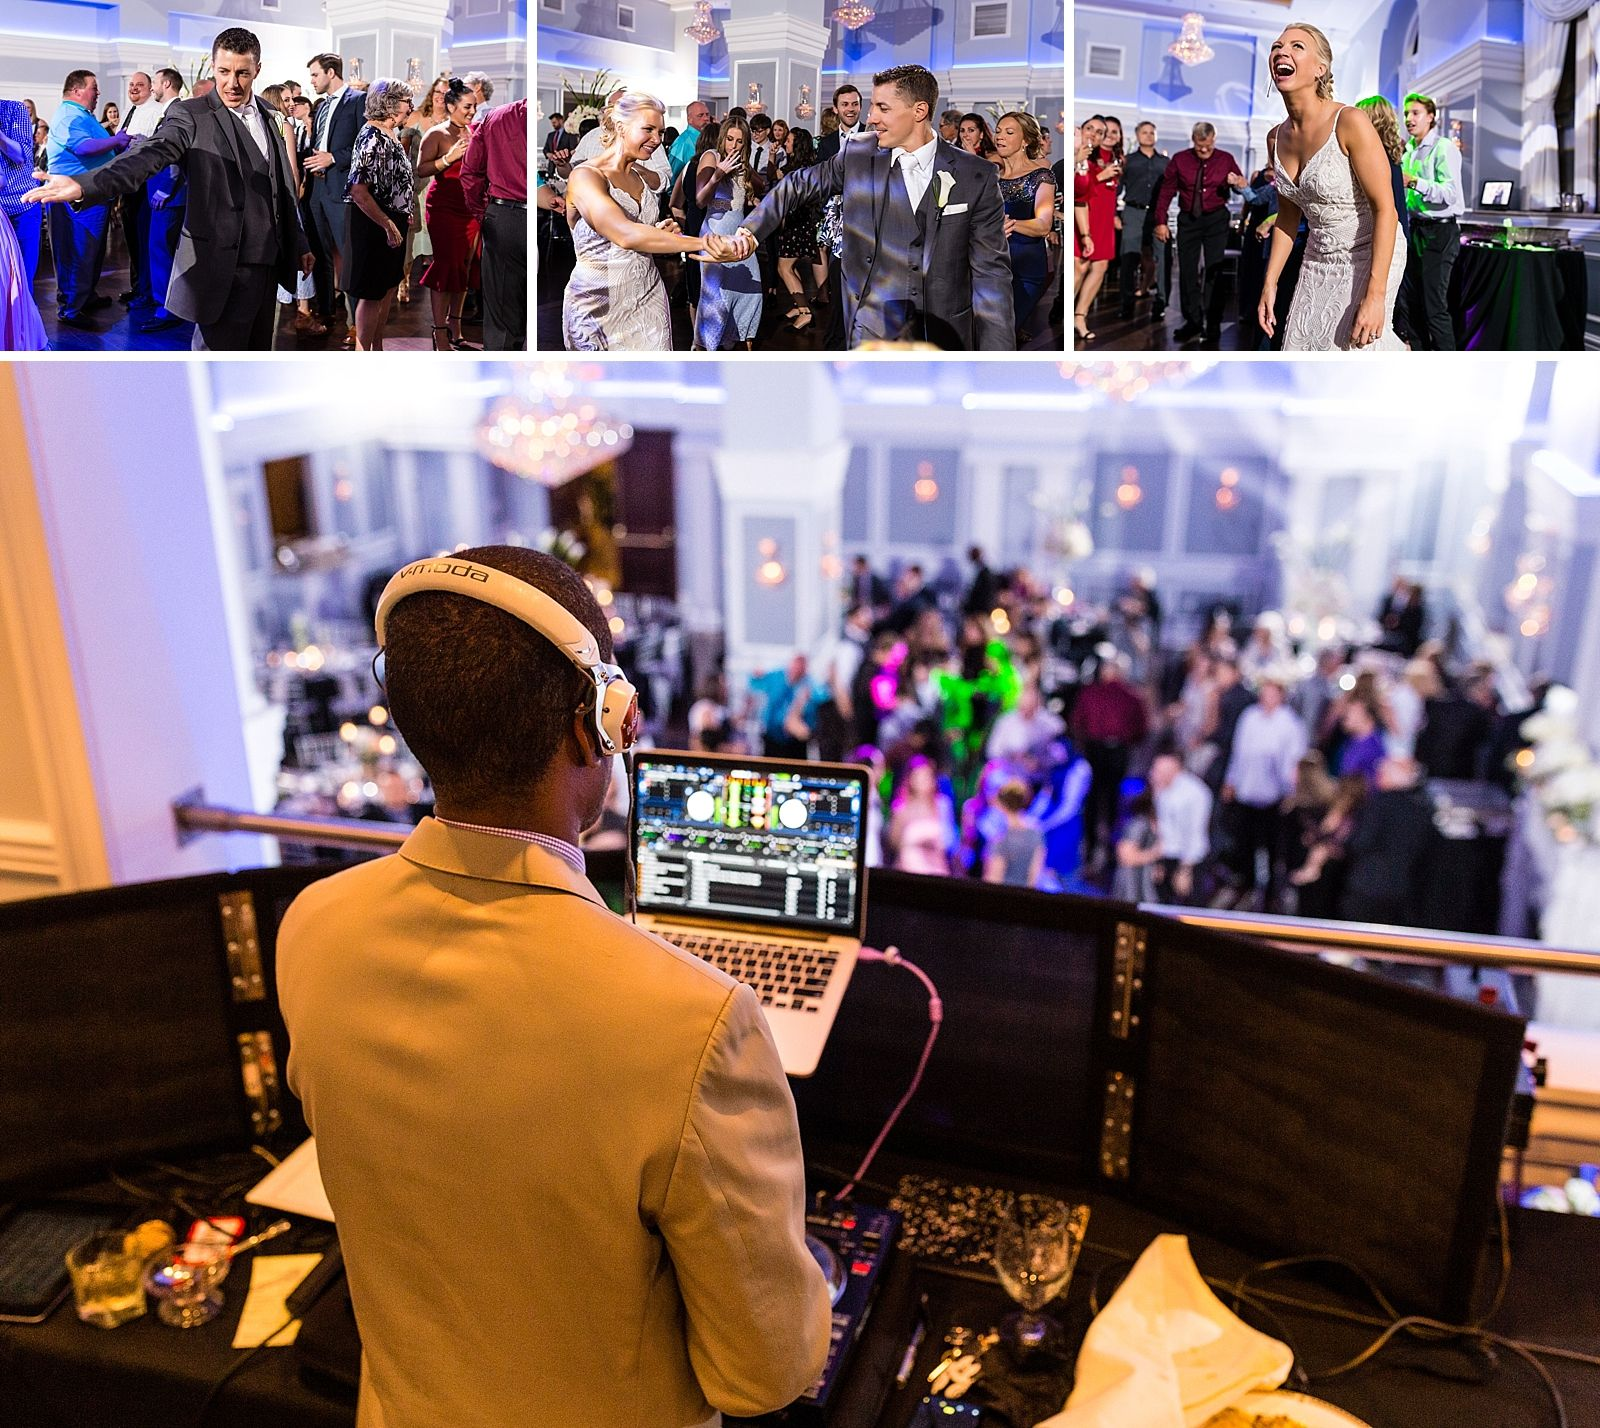 Wedding Reception, Dj, Party Time, Wedding Party